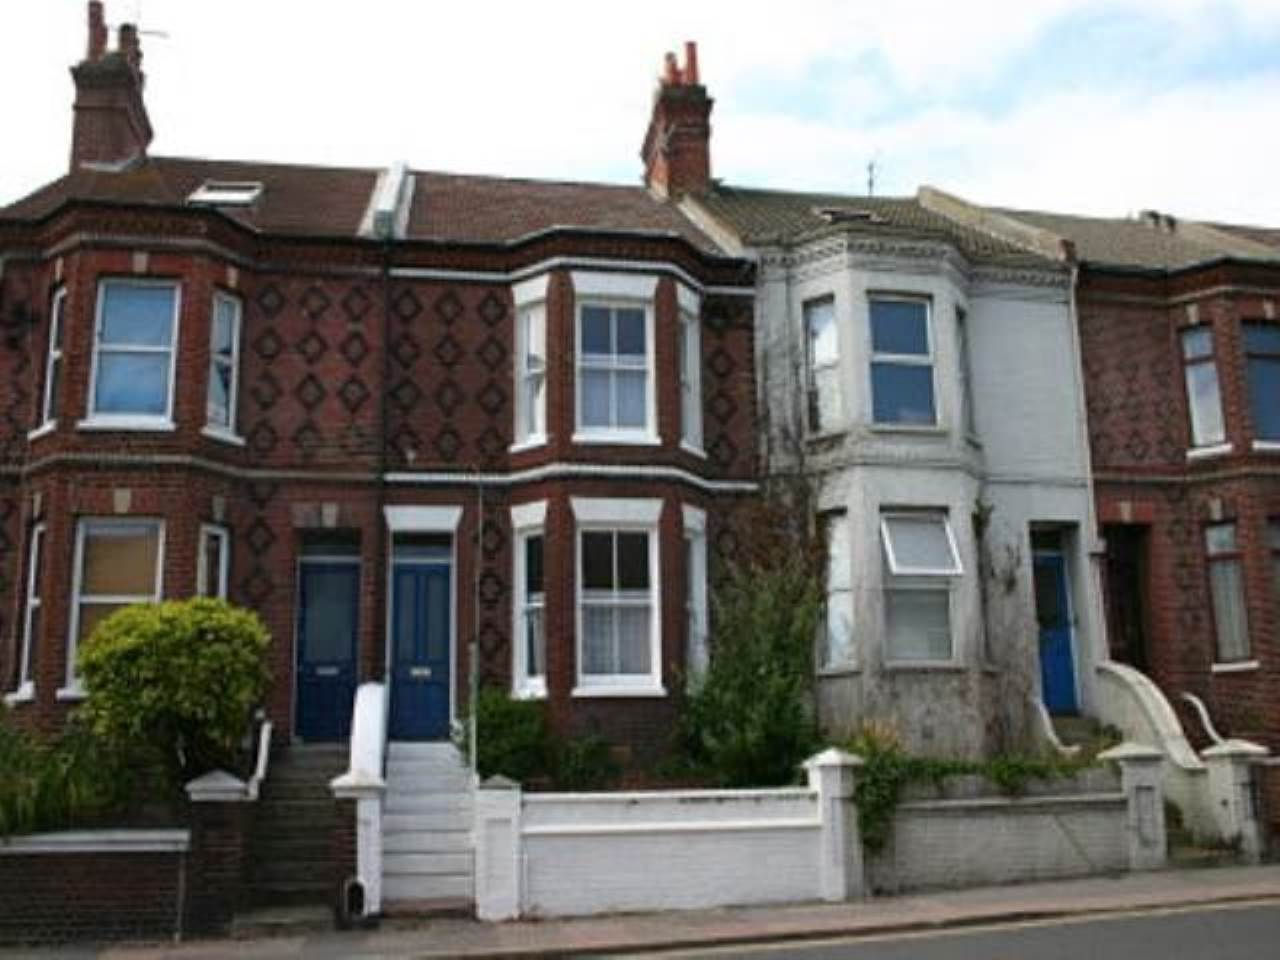 6 bed house to rent in Upper Lewes Rd, Brighton  - Property Image 10